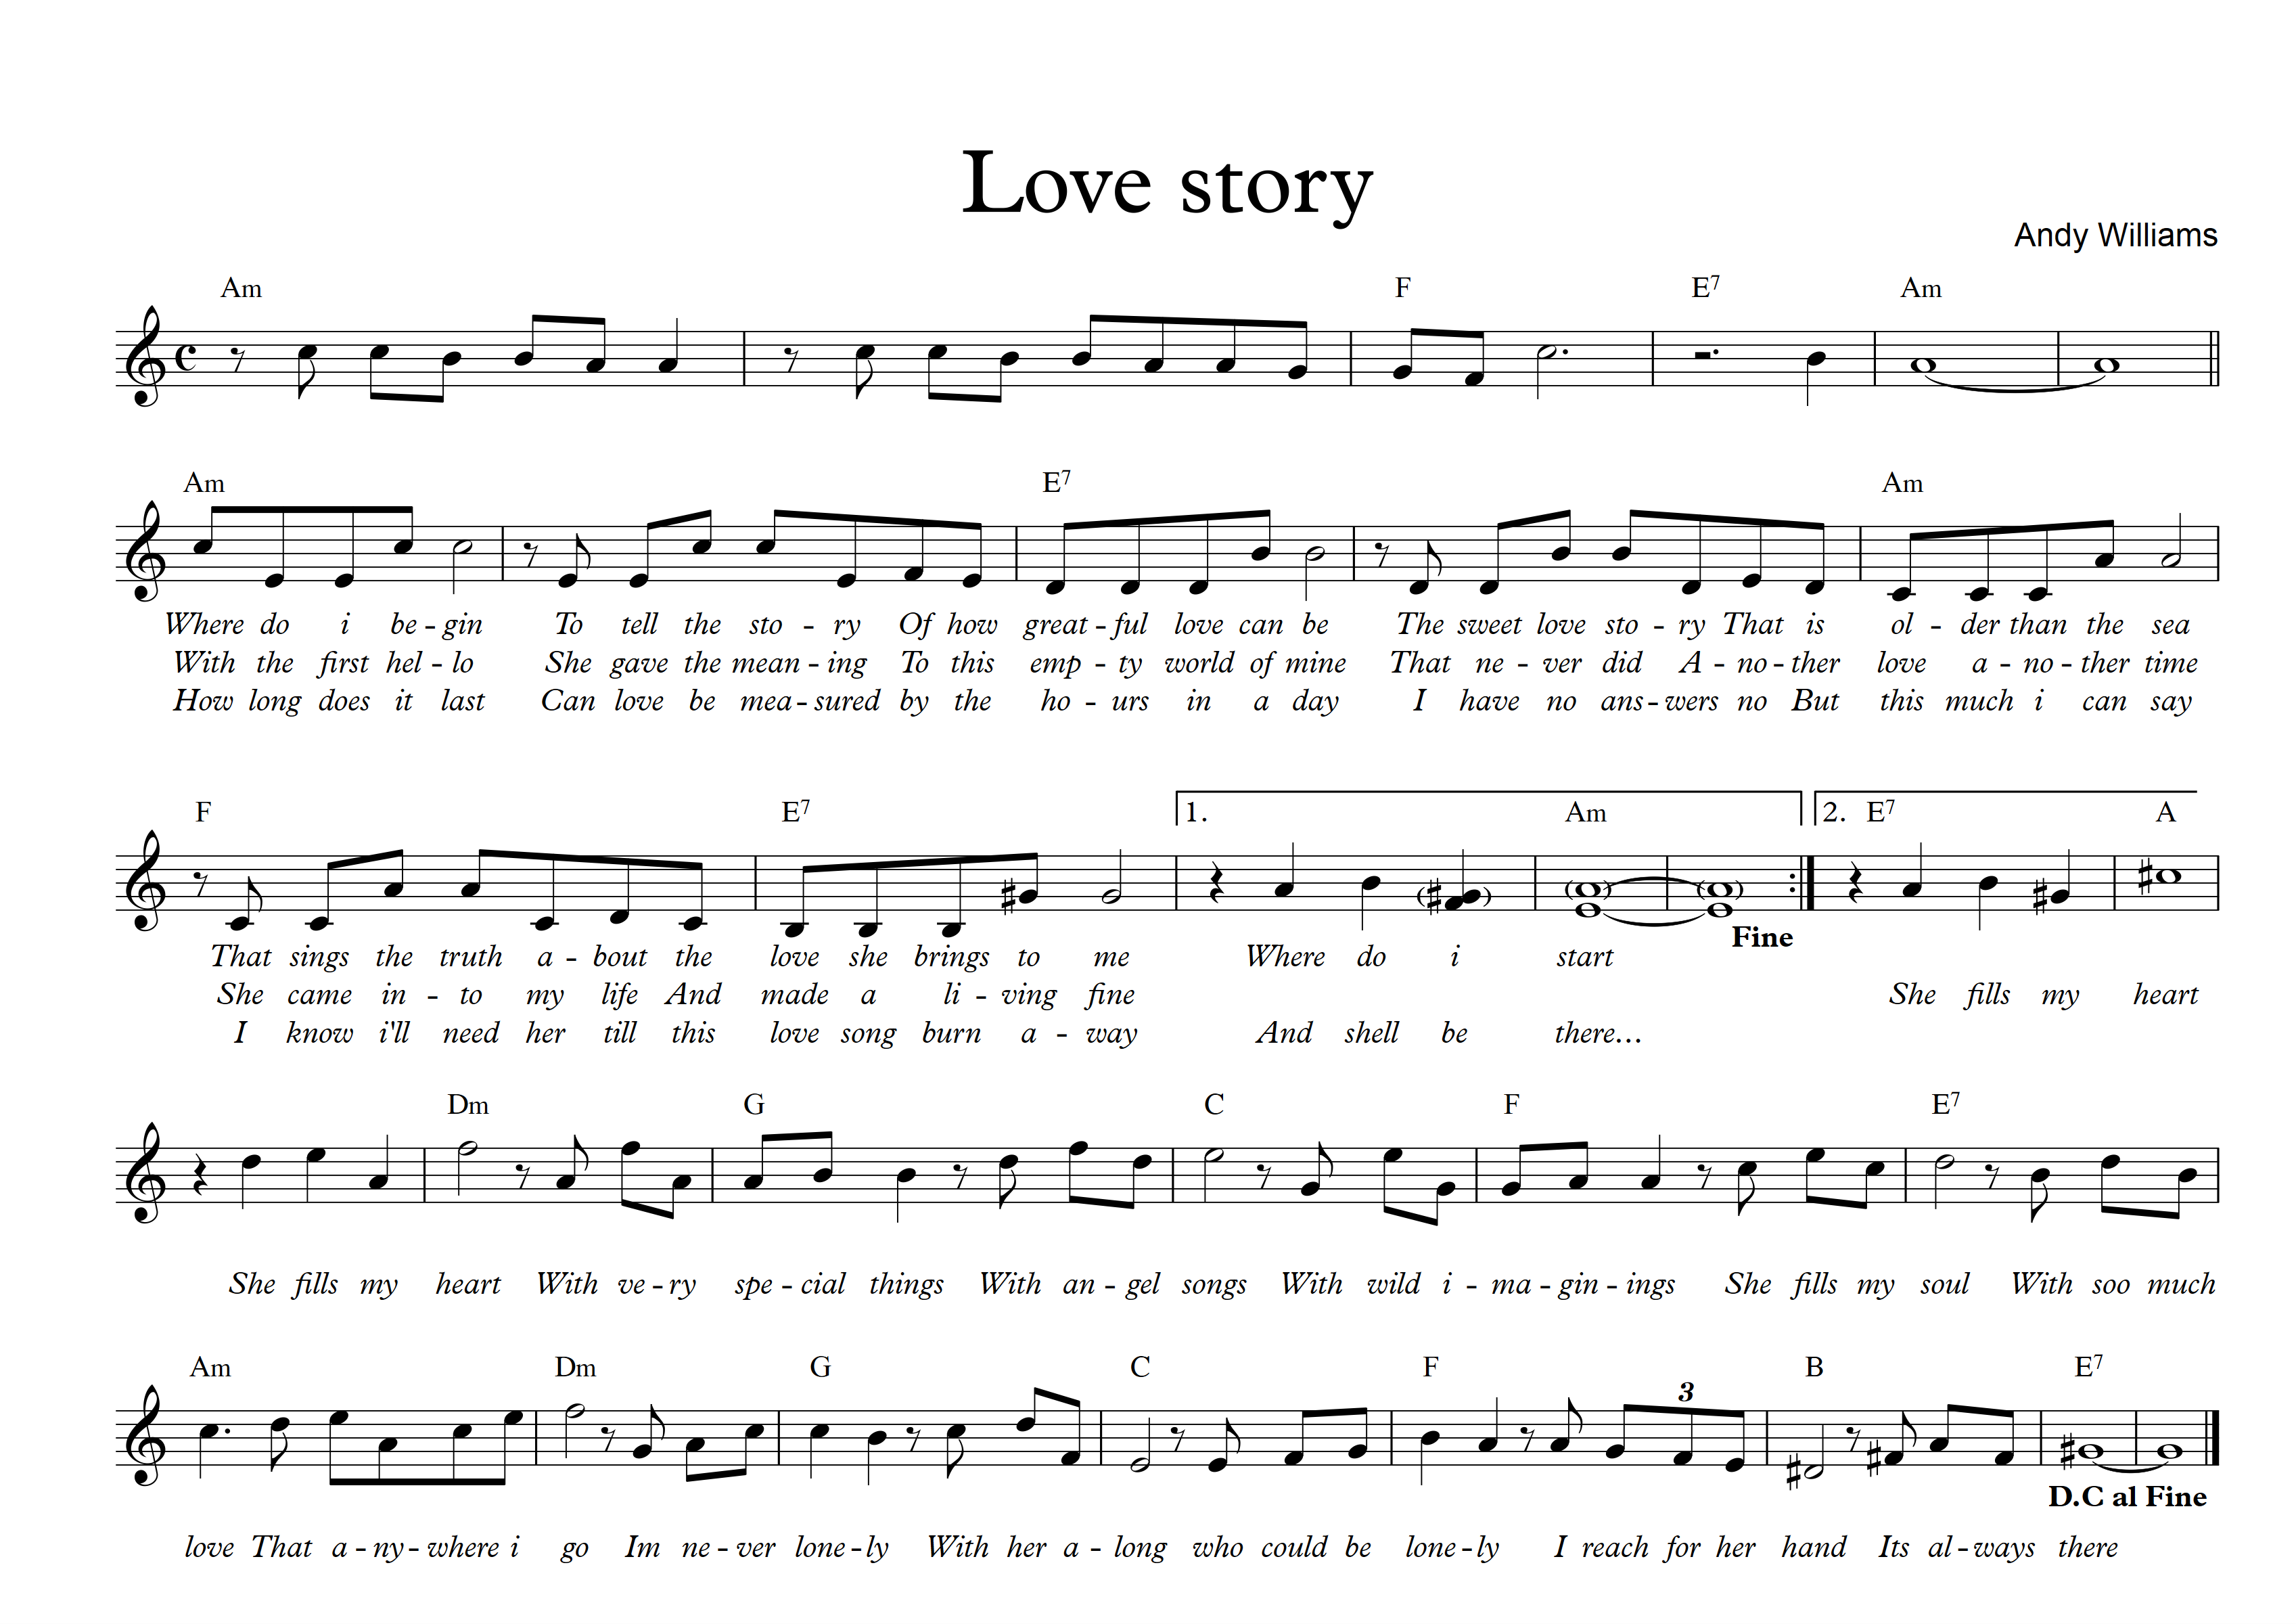 Love story - Am